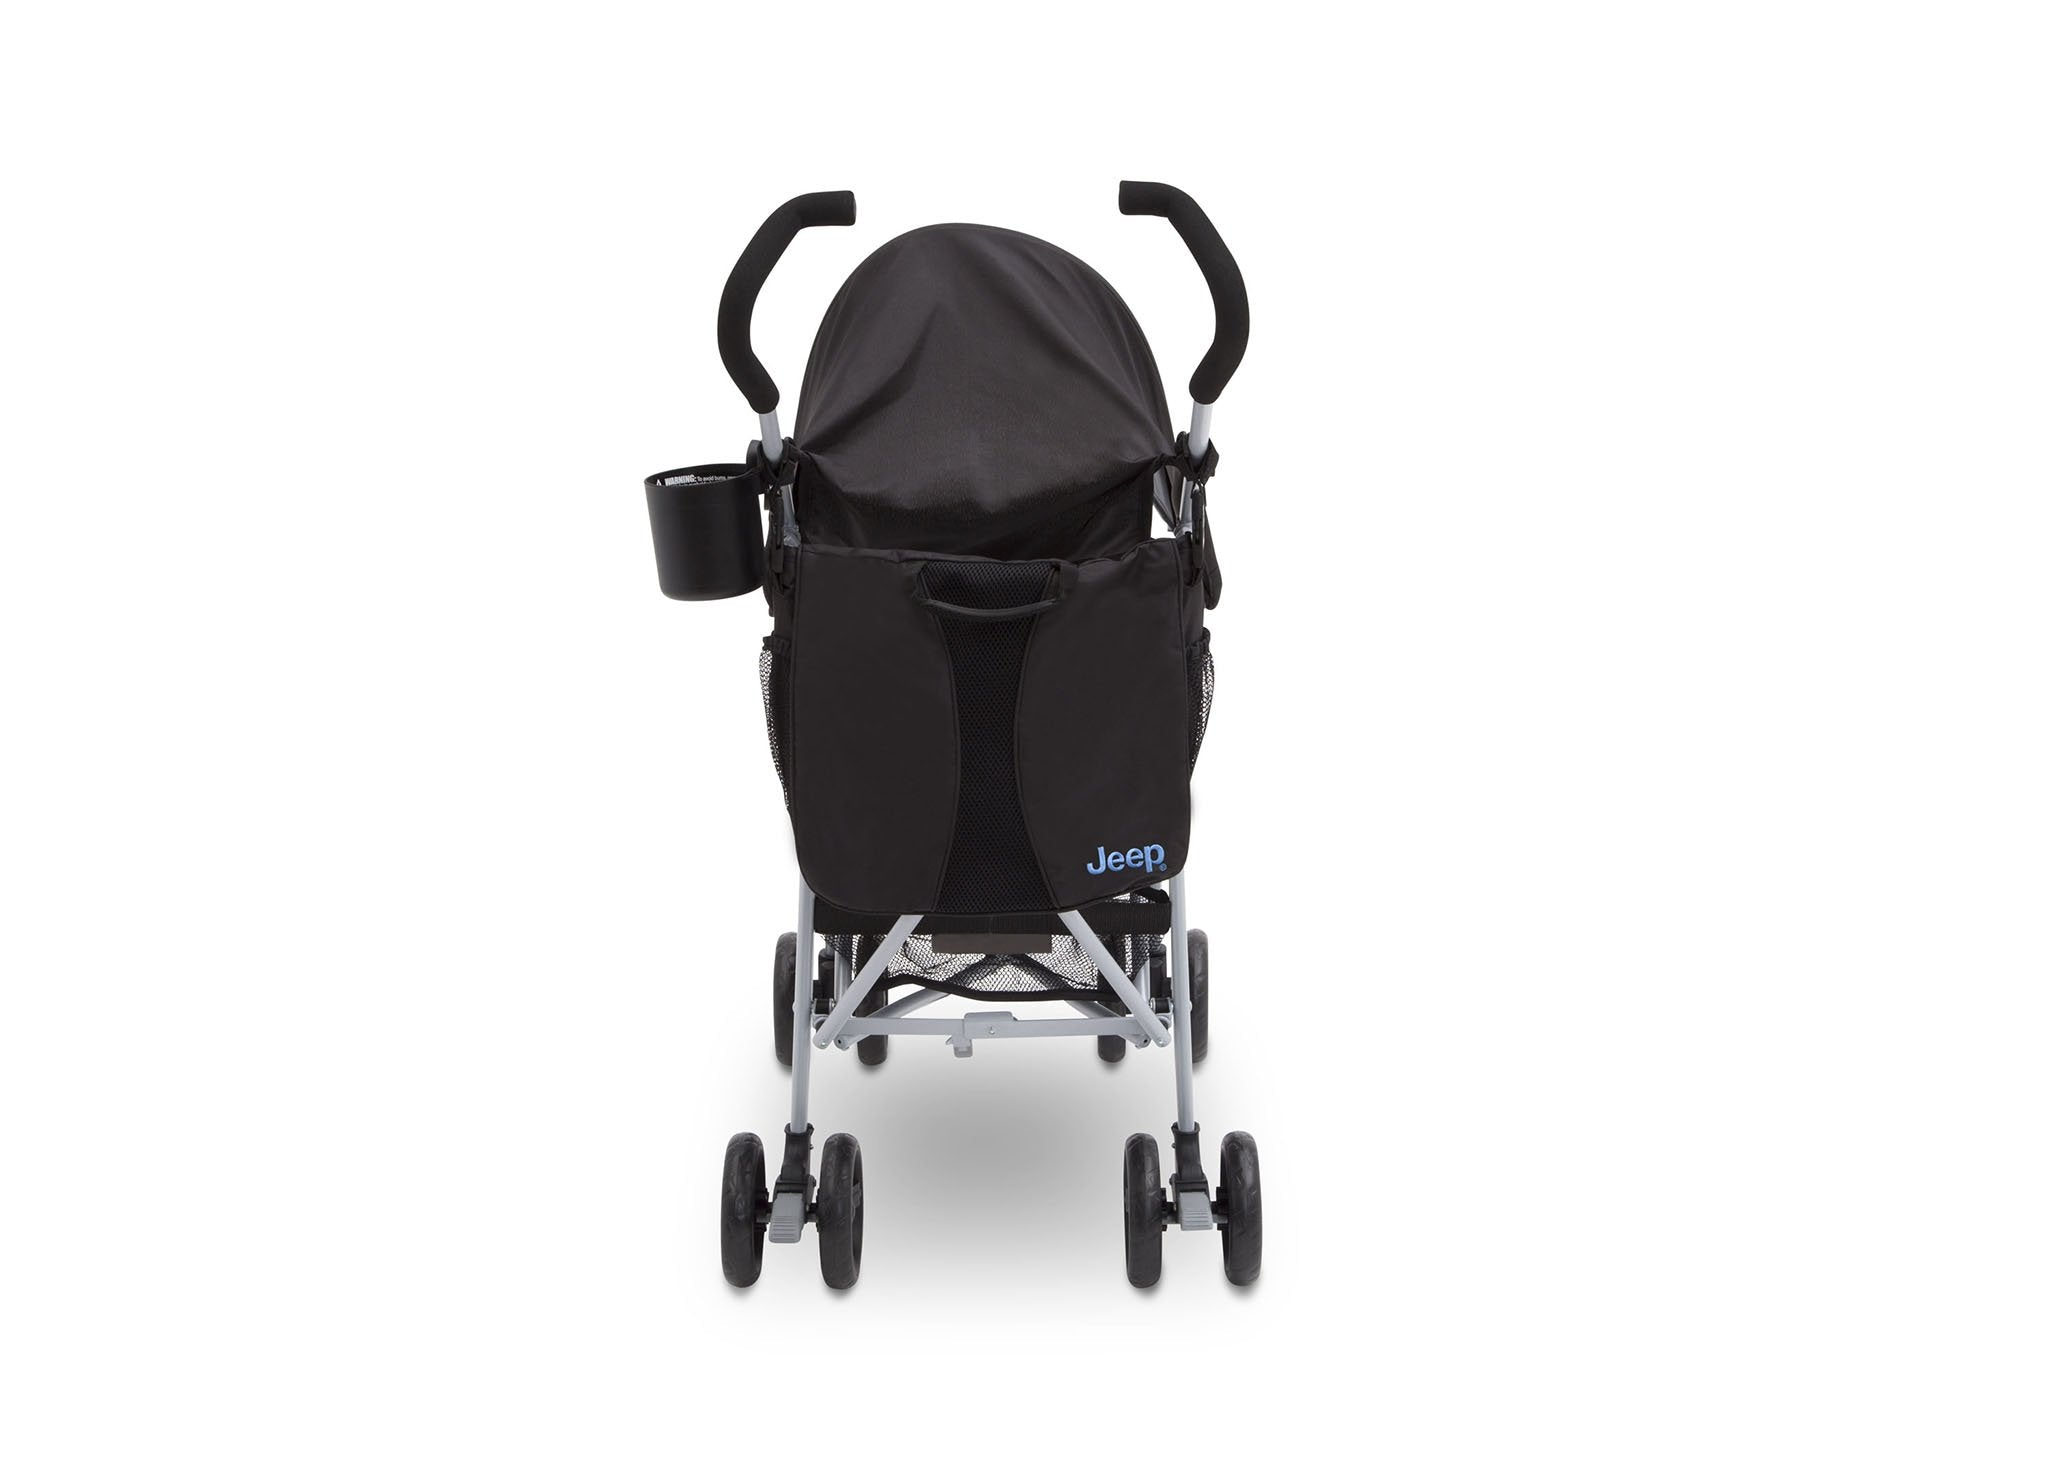 Jeep North Star Stroller by Delta Children, Black with Baby Blue (2279), with Parent cup holder and easy-grip, extra-long foam handles